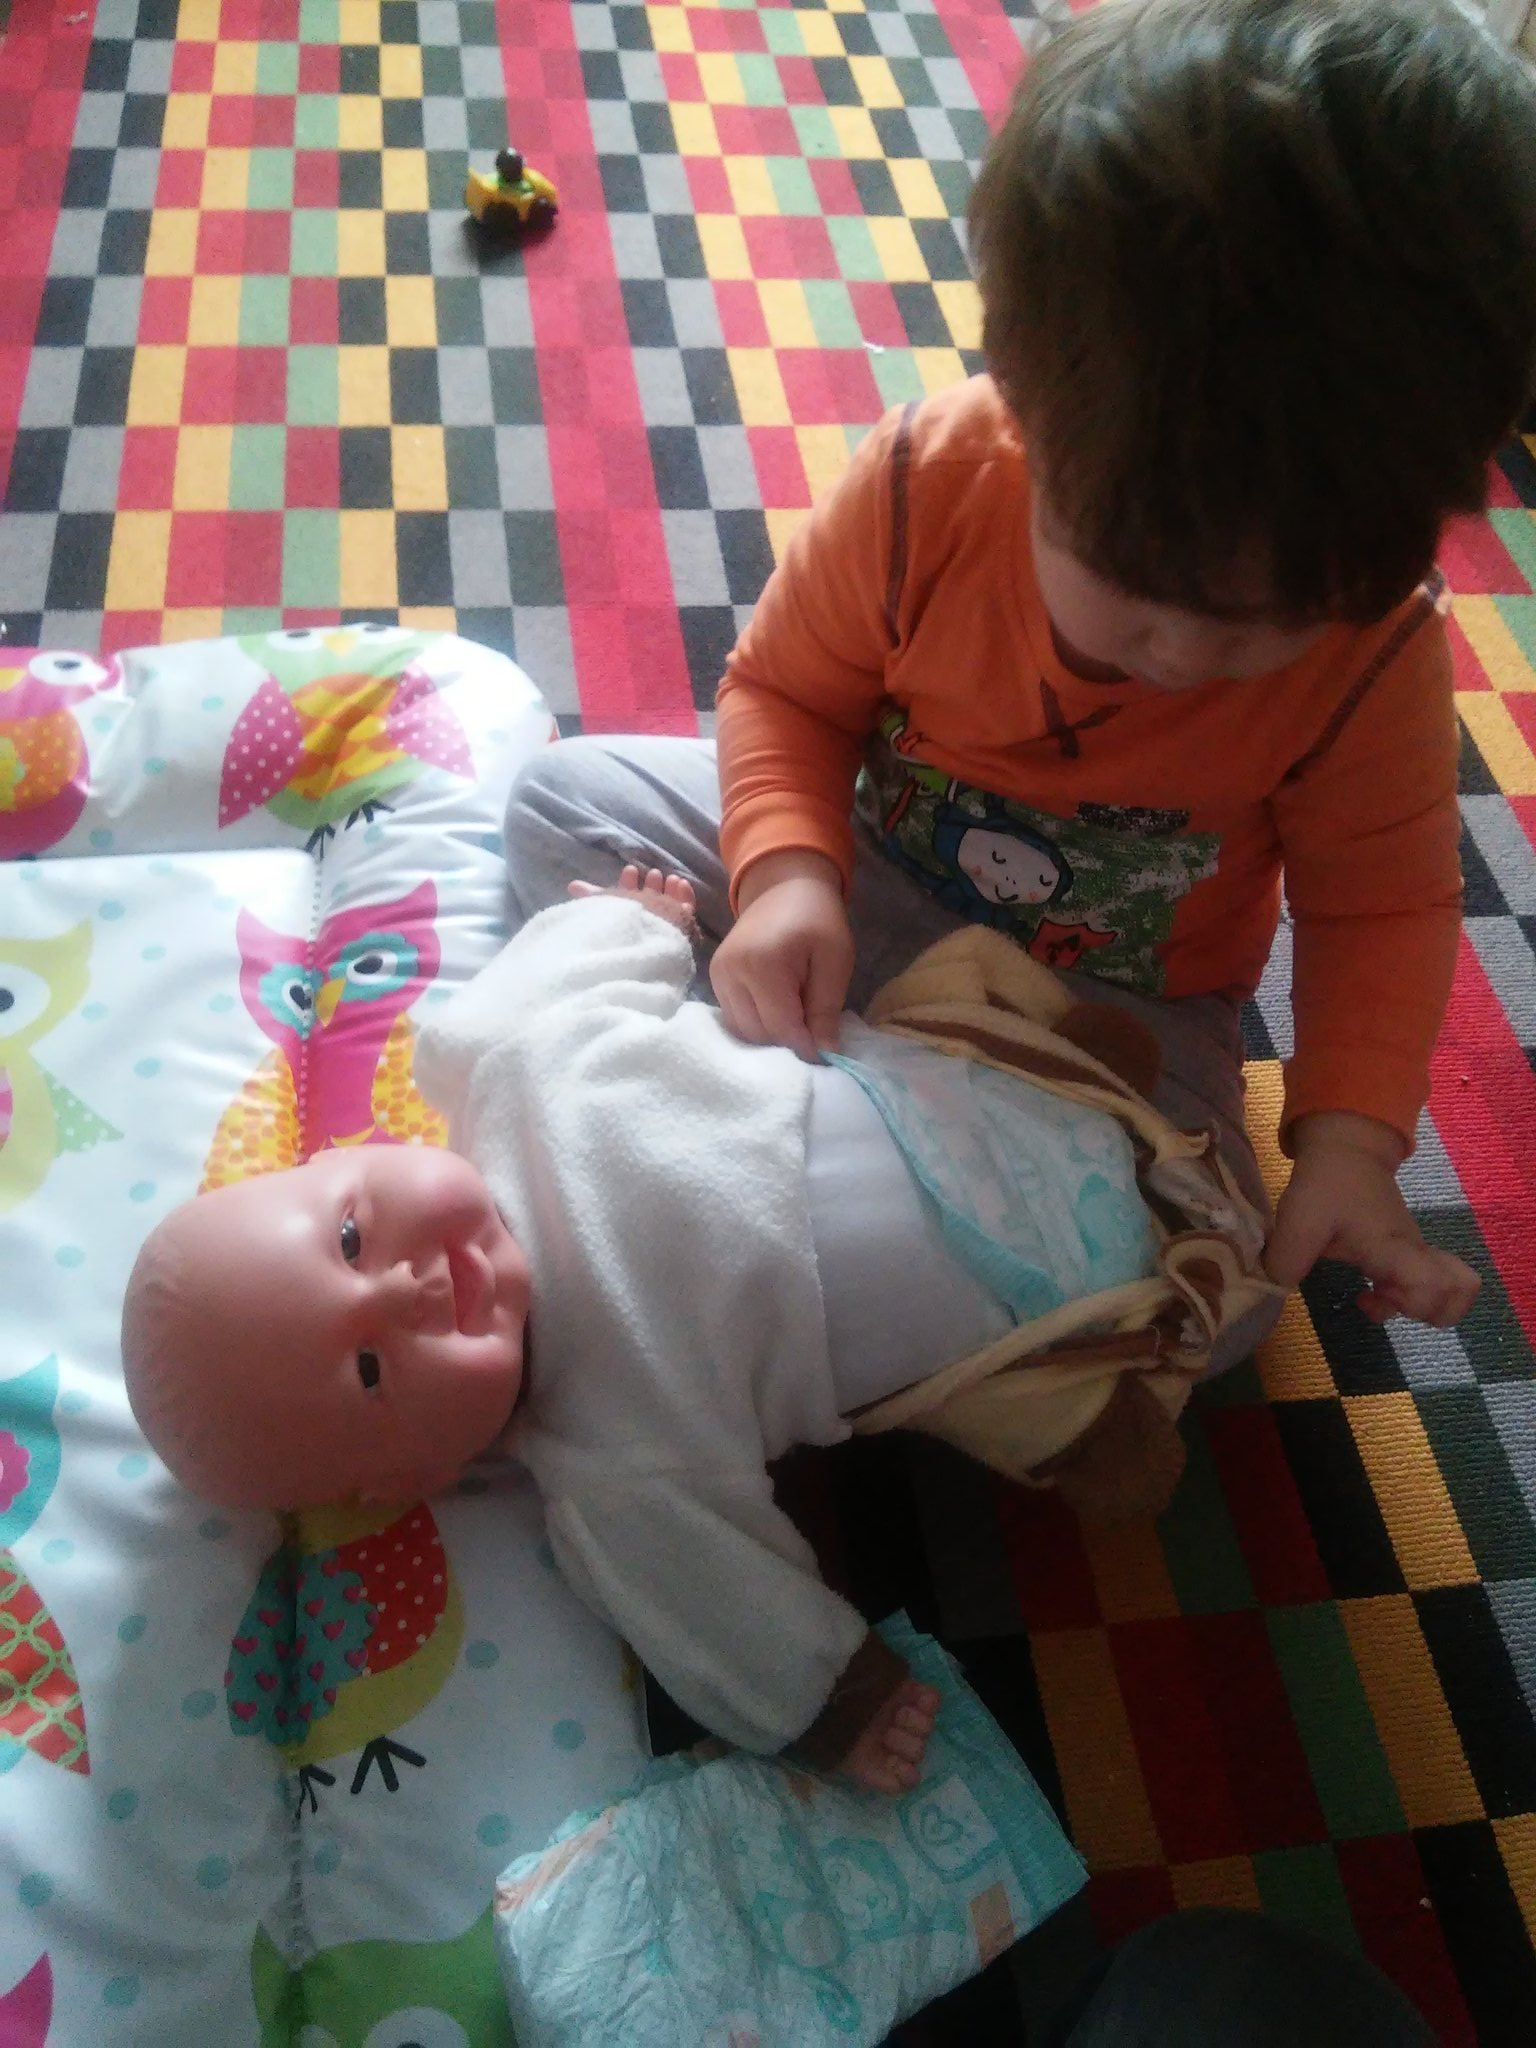 Like father, like son: changing diapers takes practice! ;) @LetToysBeToys https://t.co/eHxuQEet0f